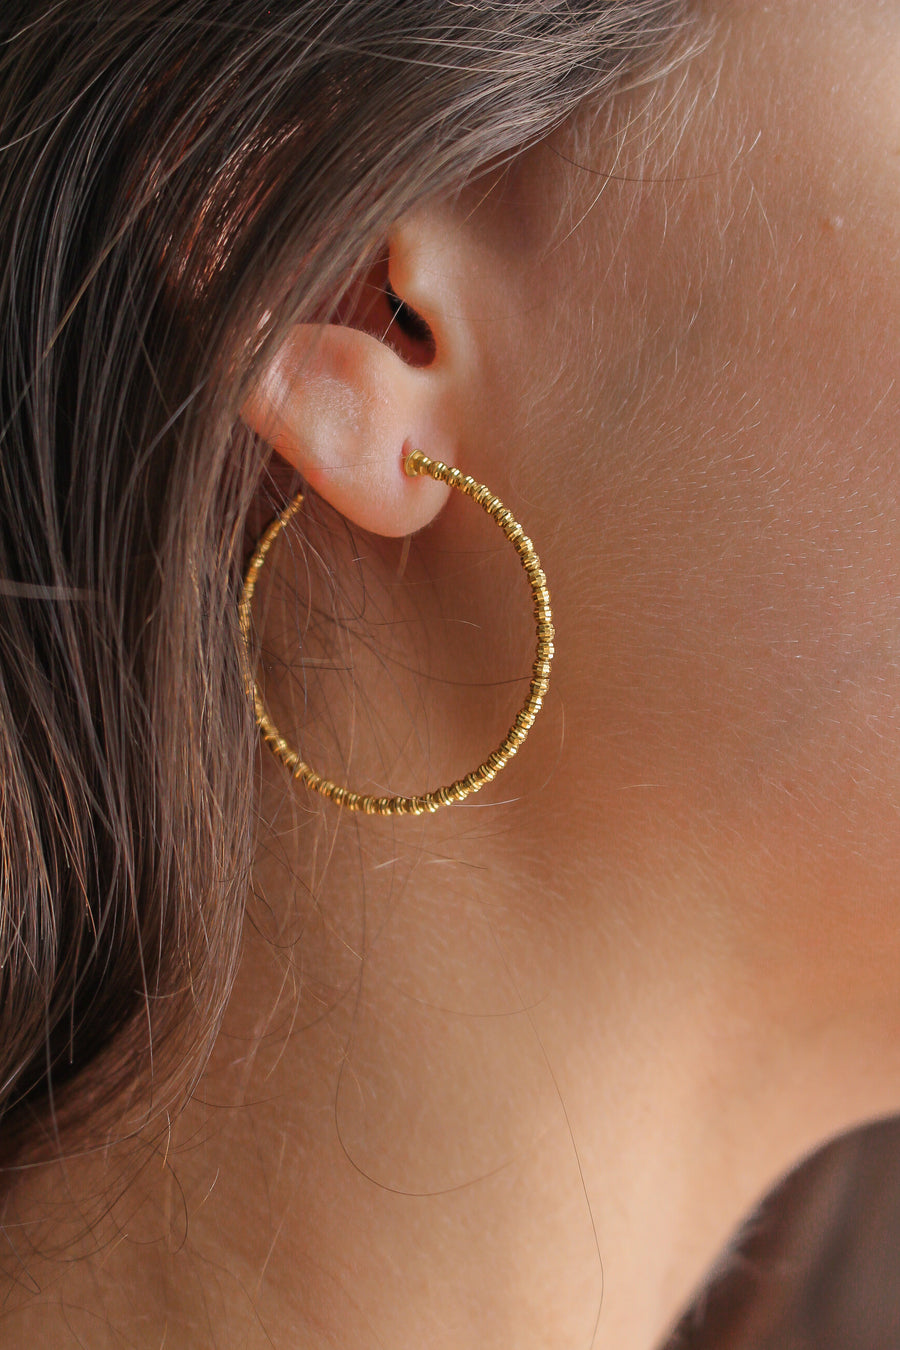 Gold Diamond Cut Hoop Earrings - 14KT Gold - Monisha Melwani Jewelry